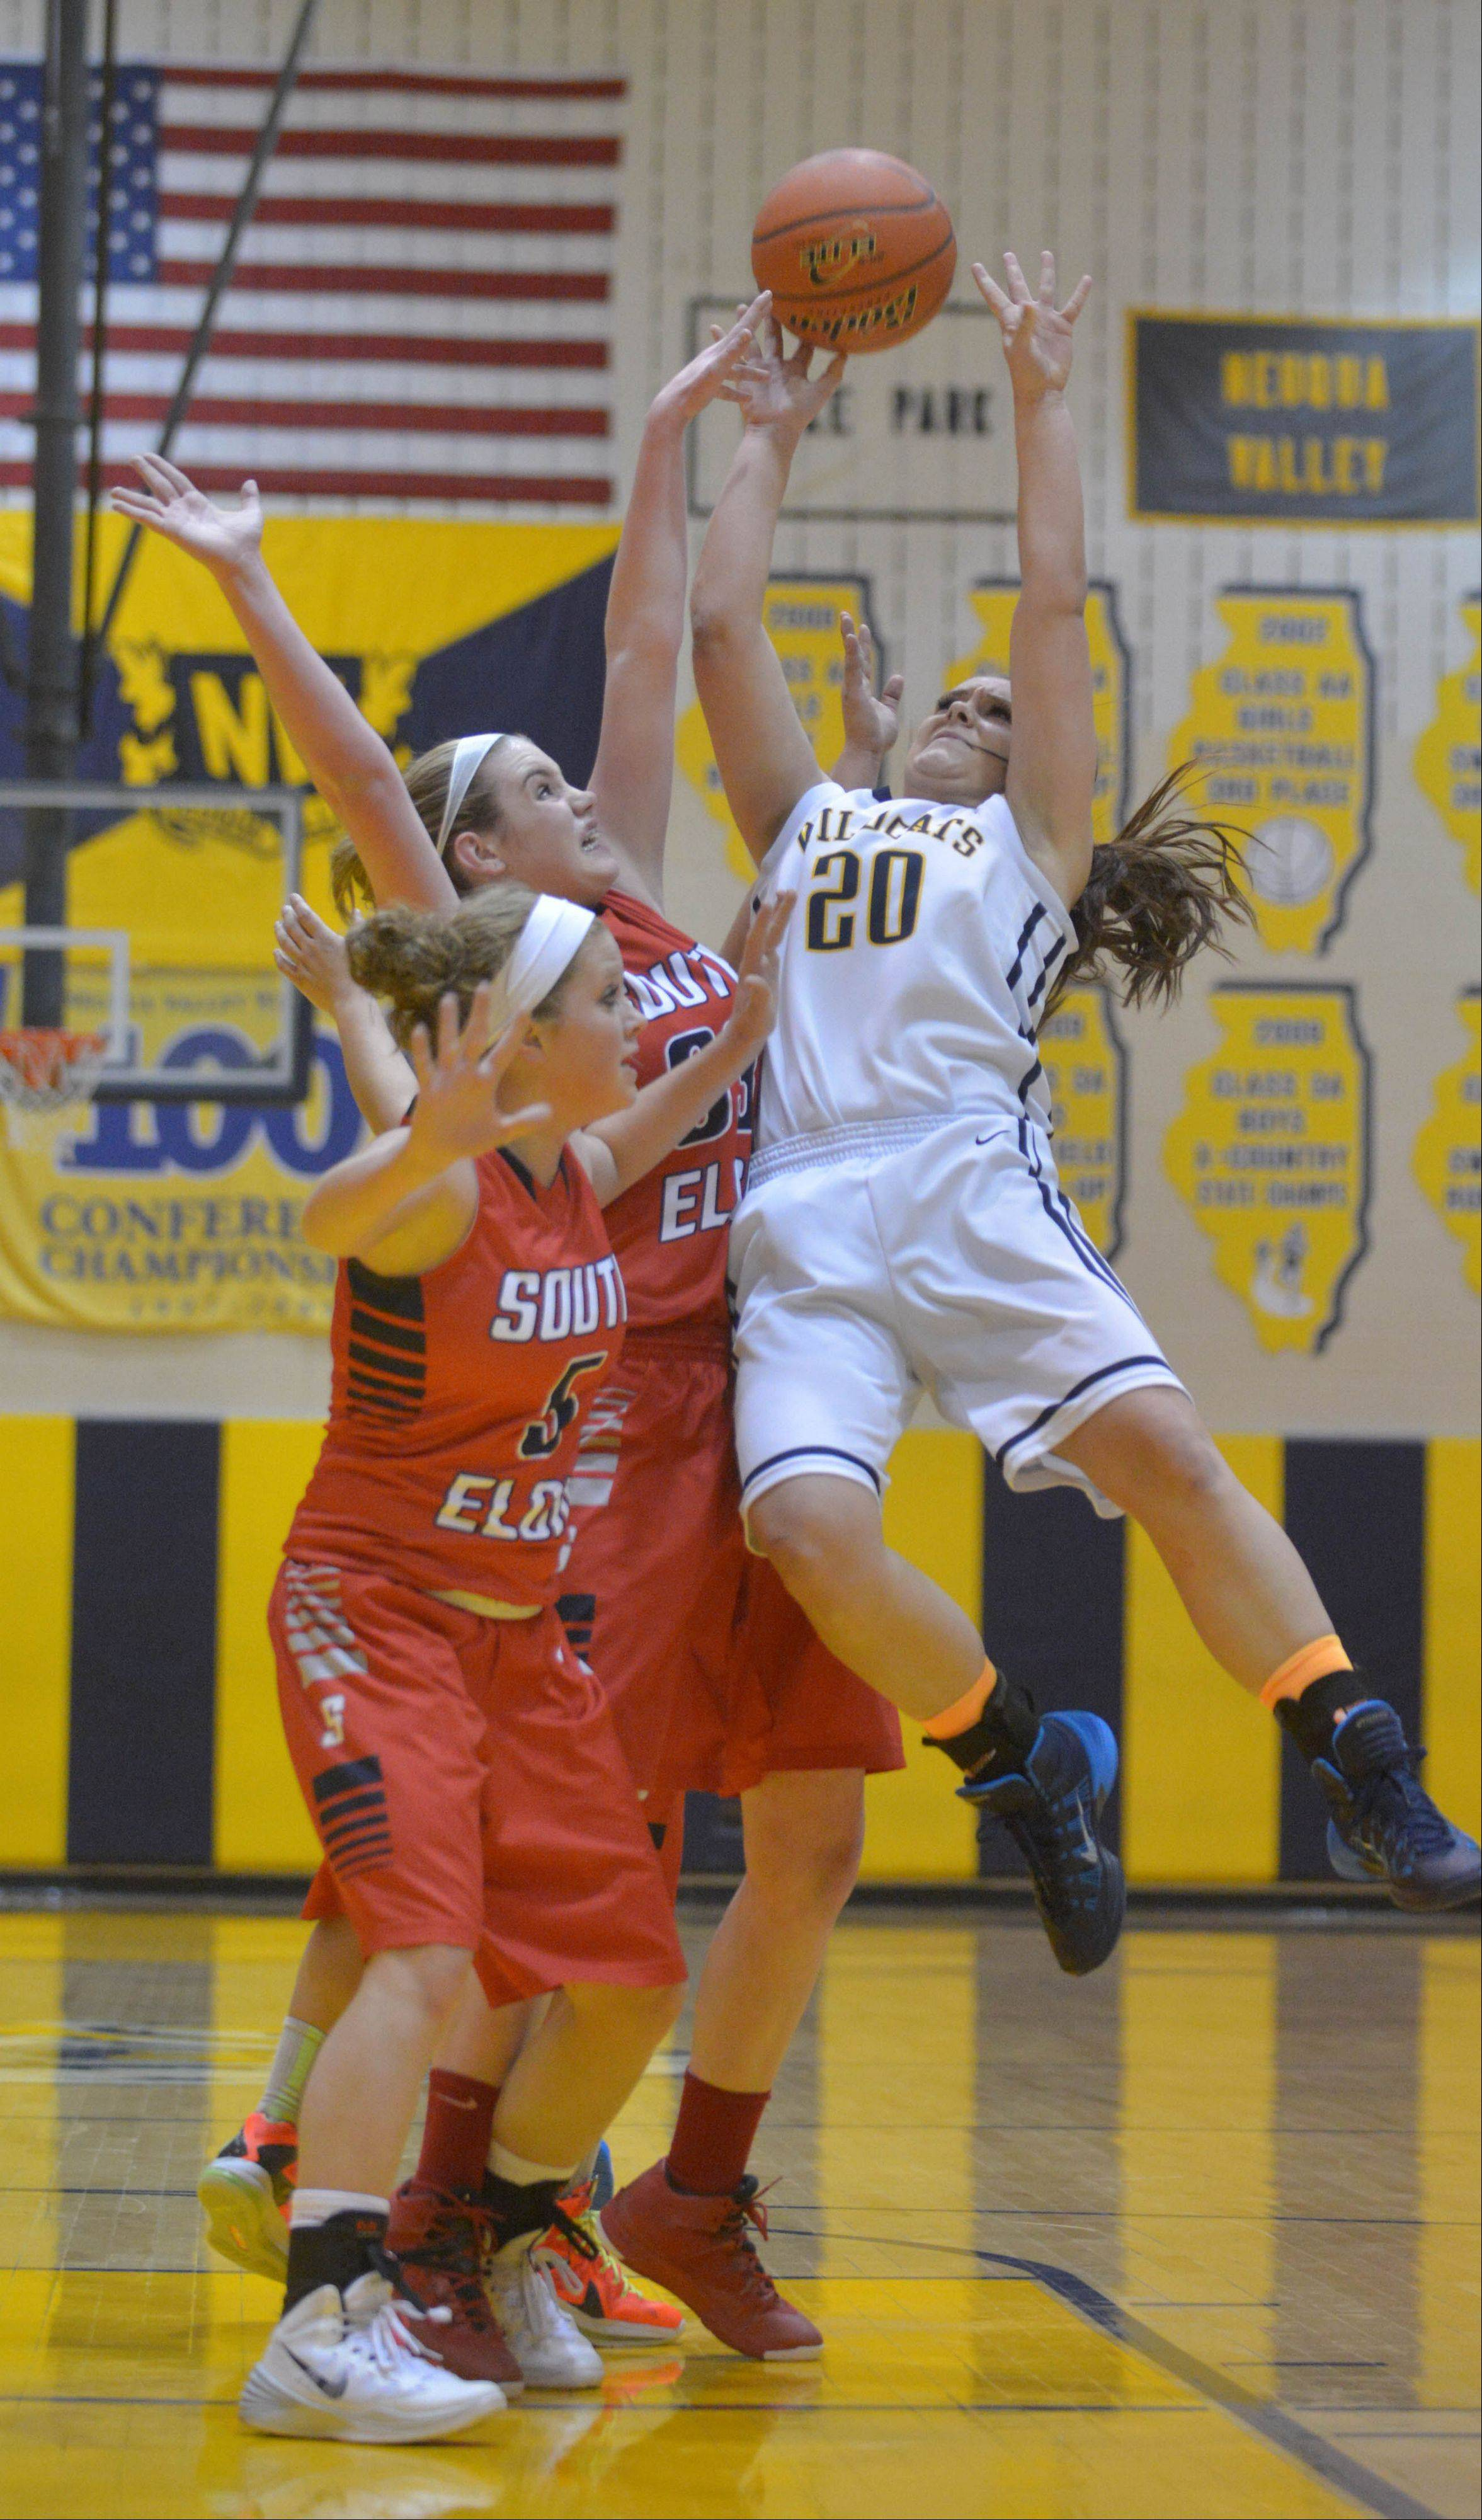 Anna Tracy and Mackie Kelleher of South Elgin go for a rebound with Niki Lazar of Neuqua Valley.